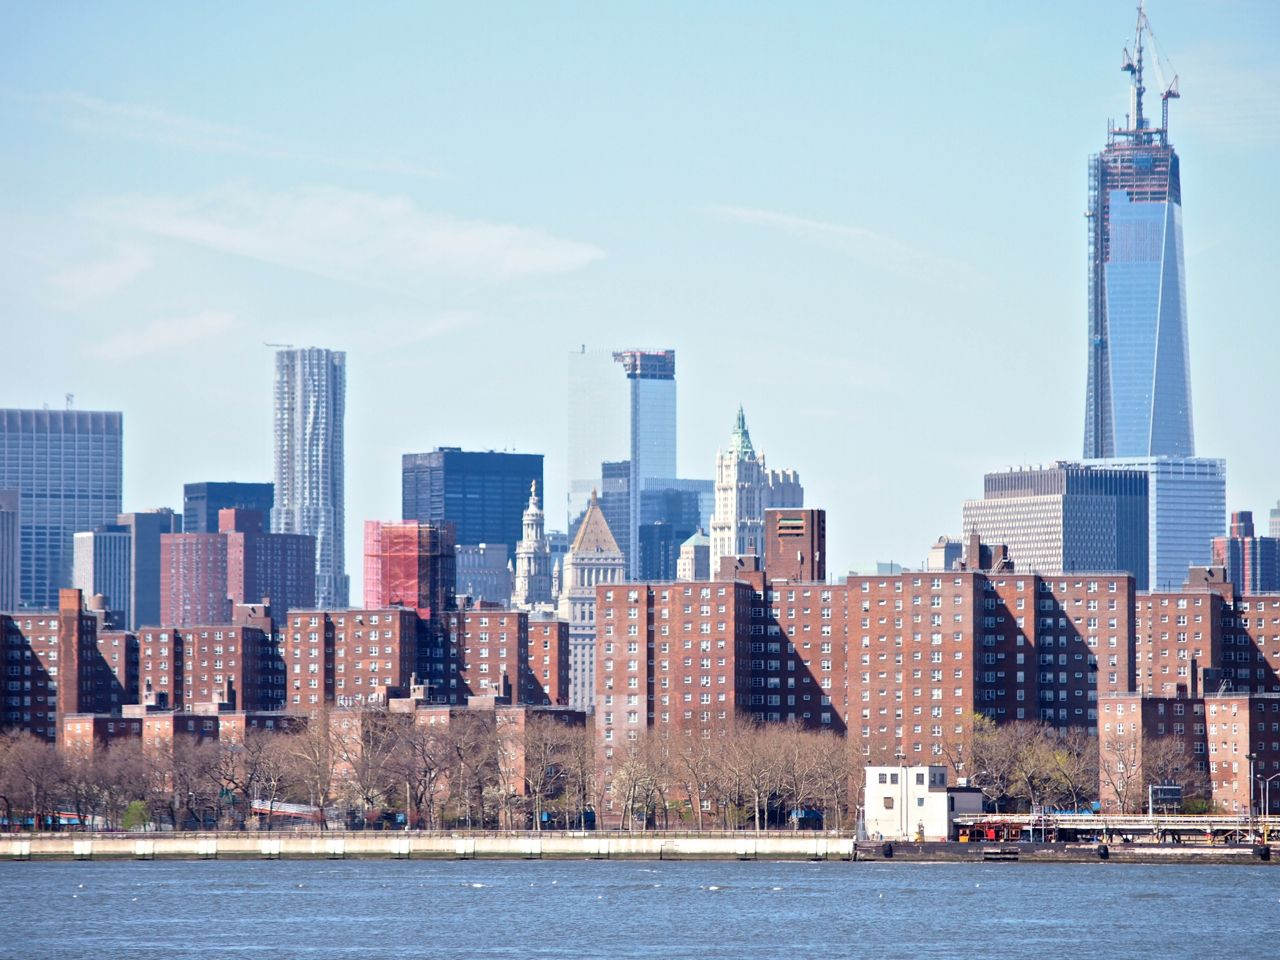 From Brooklyn Lower Manhattan Low Income Housing With Wall St Behind 4 13 Lower Manhattan New York Skyline Skyline